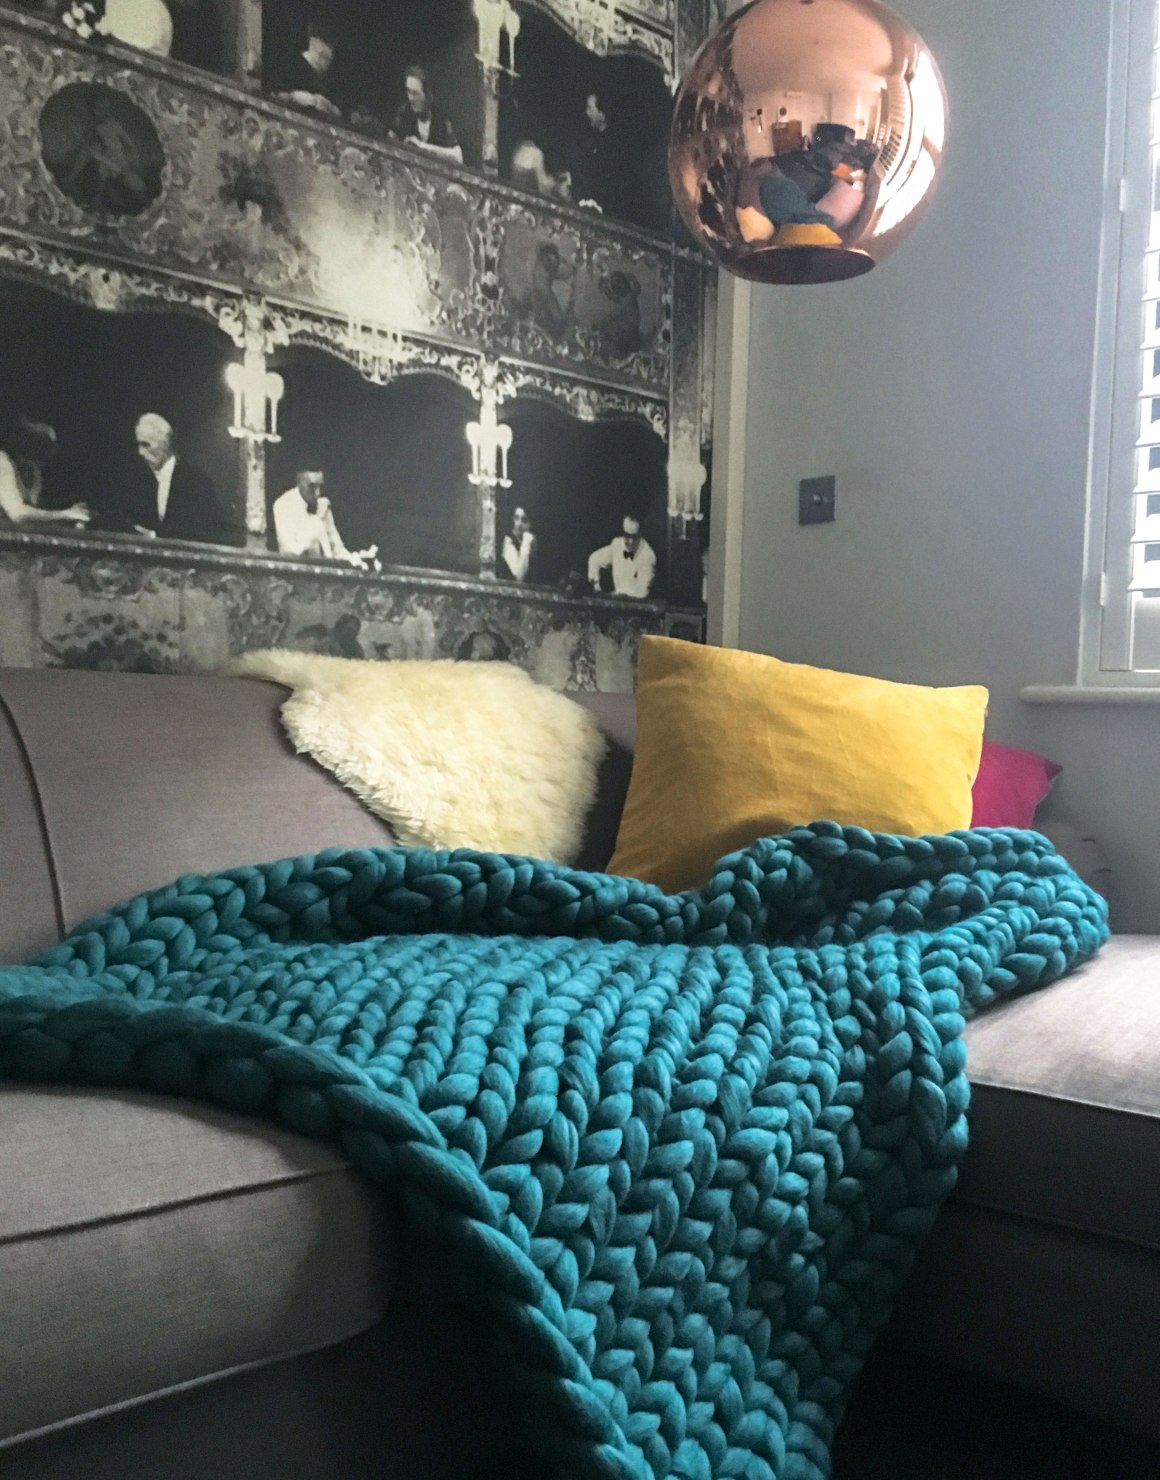 off_the_wool_giant_knit_blanket_teal3